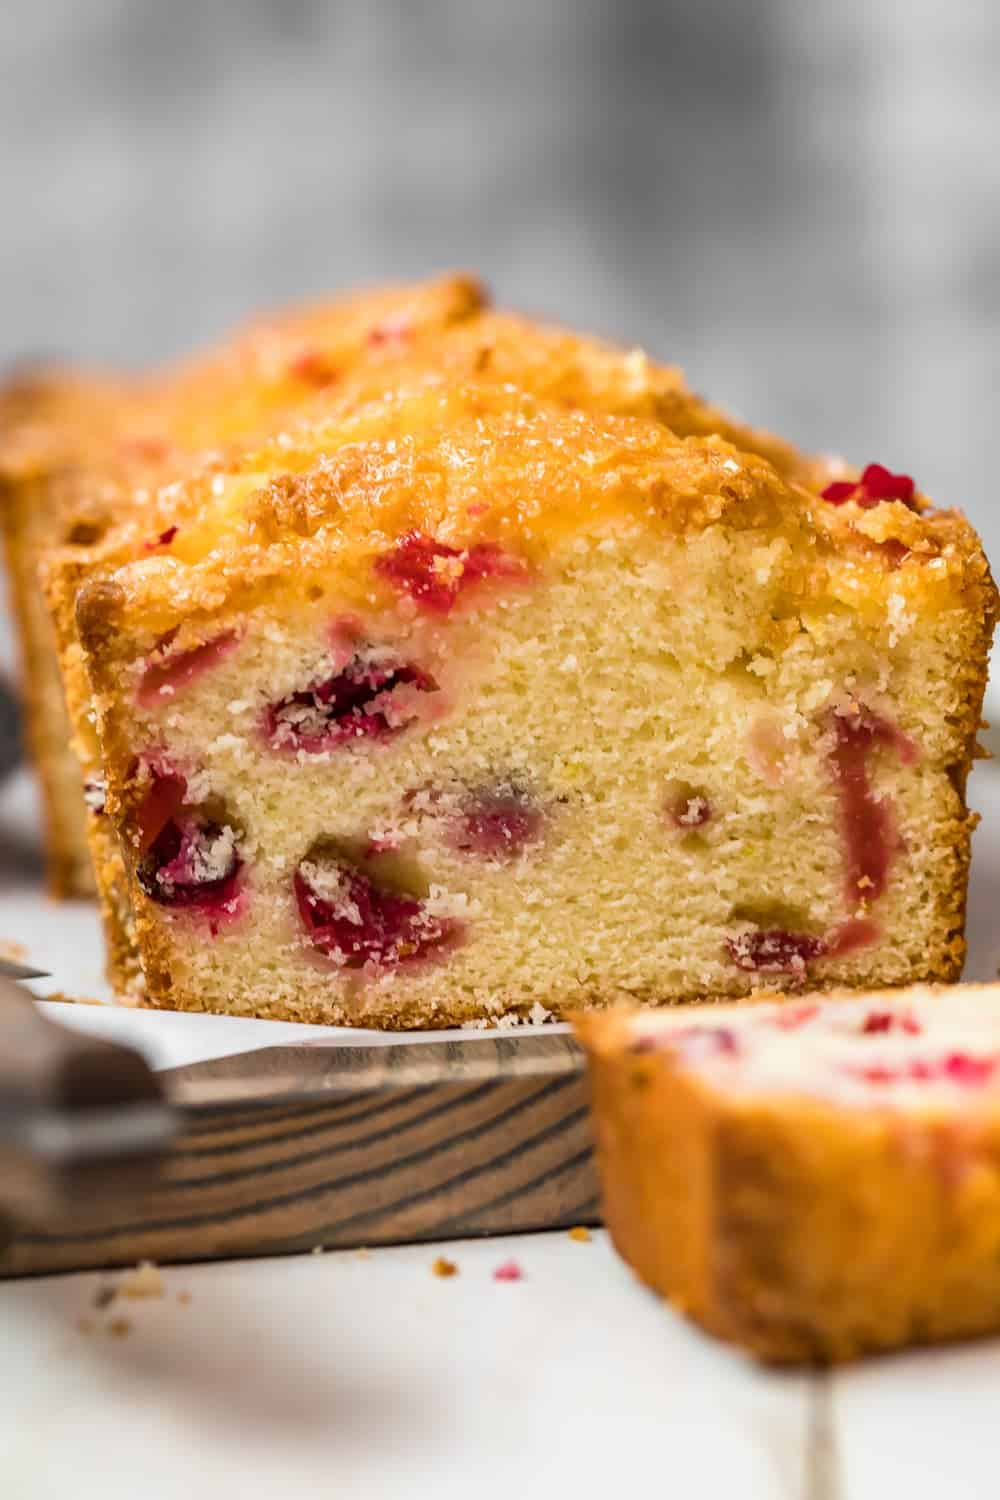 Glazed Lemon Cranberry Bread on a wooden chopping board